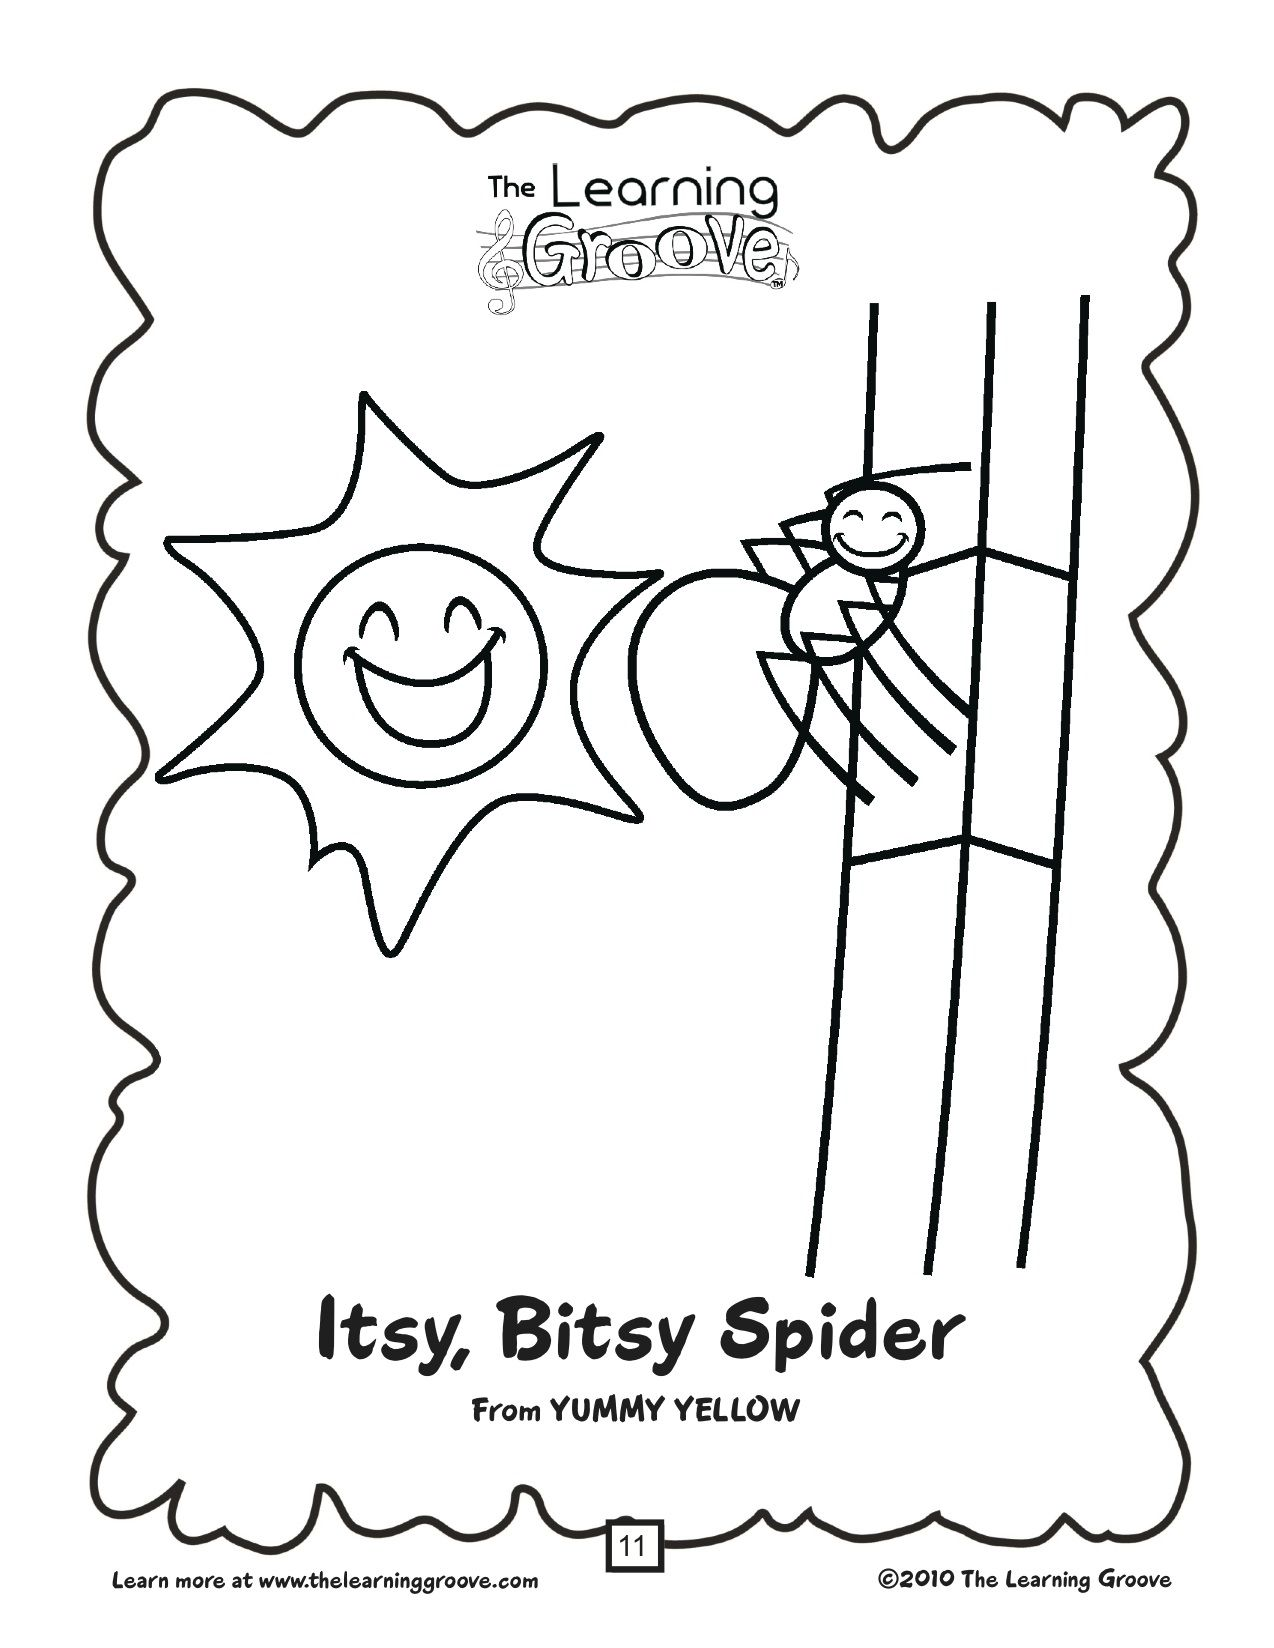 Did you ever wonder what happened to the Itsy Bitsy Spider after it ...